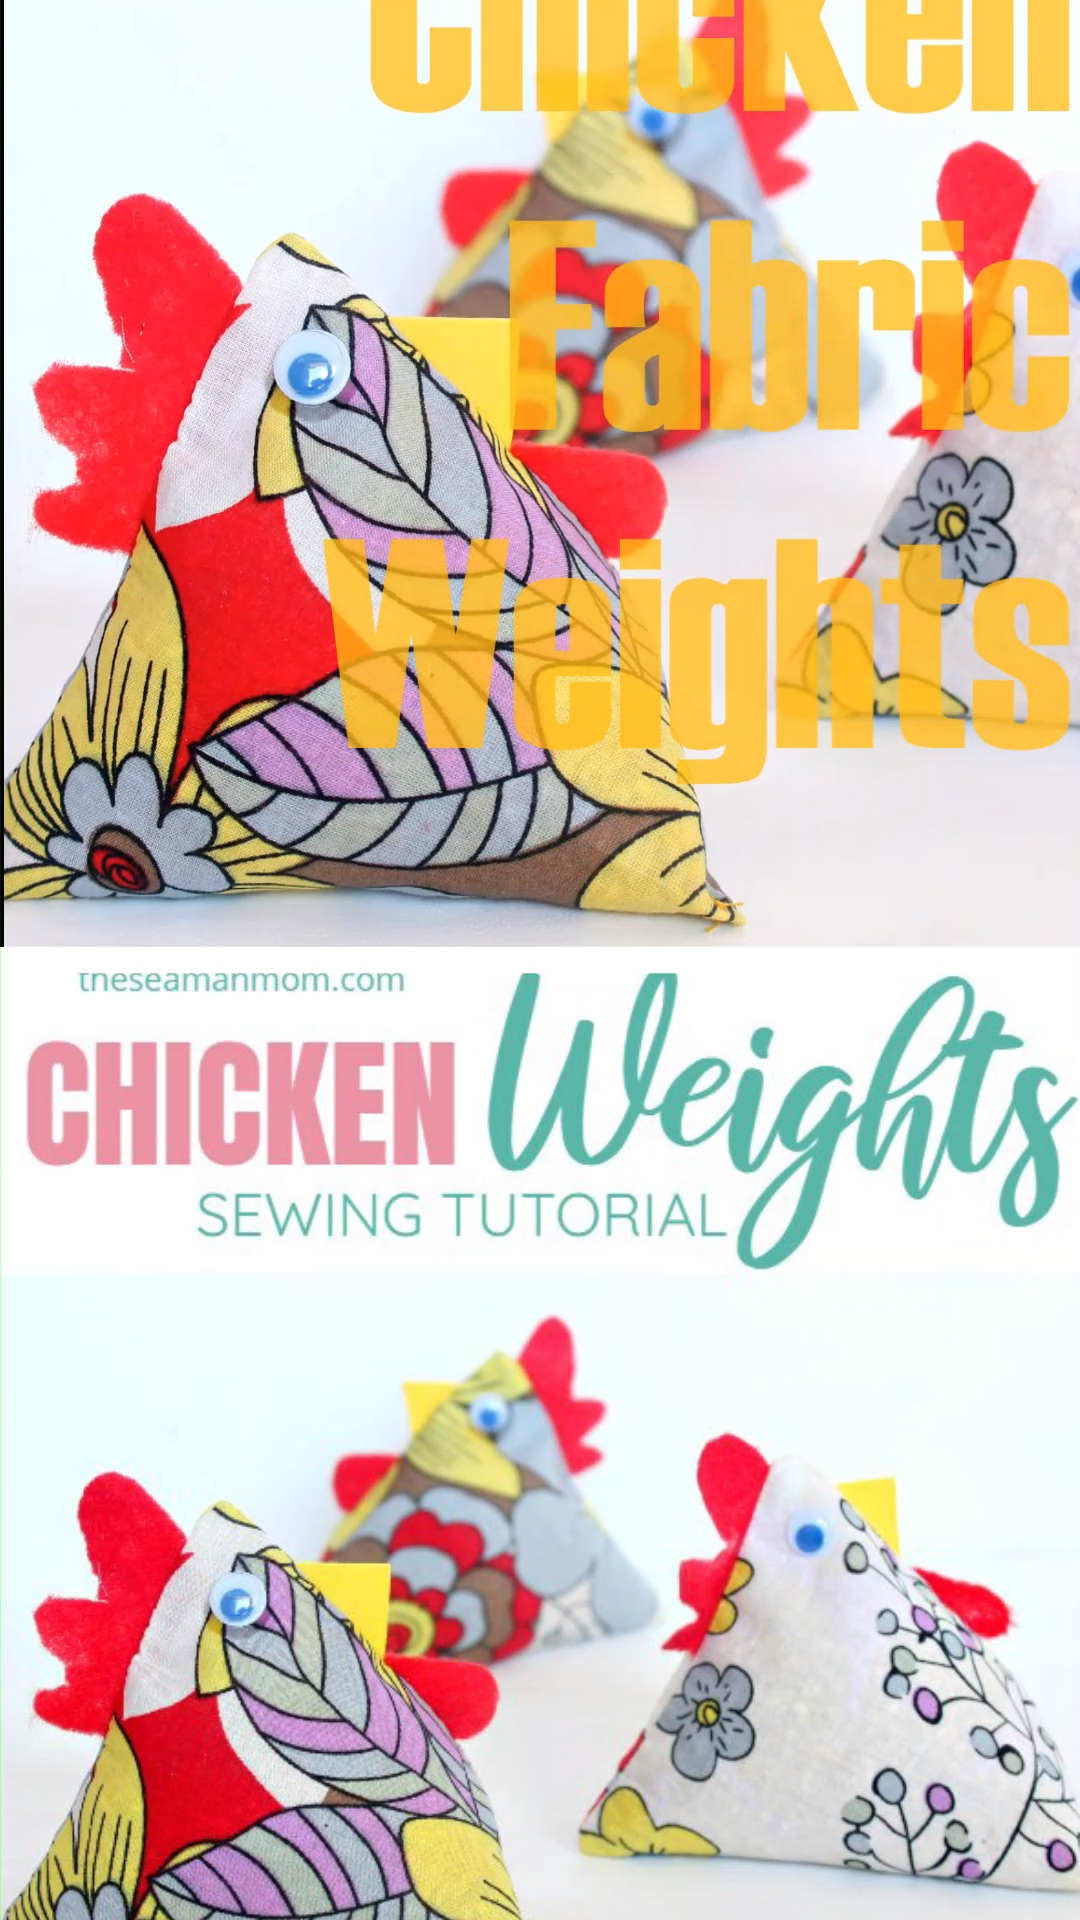 FABRIC CHICKEN WEIGHTS SEWING TUTORIAL